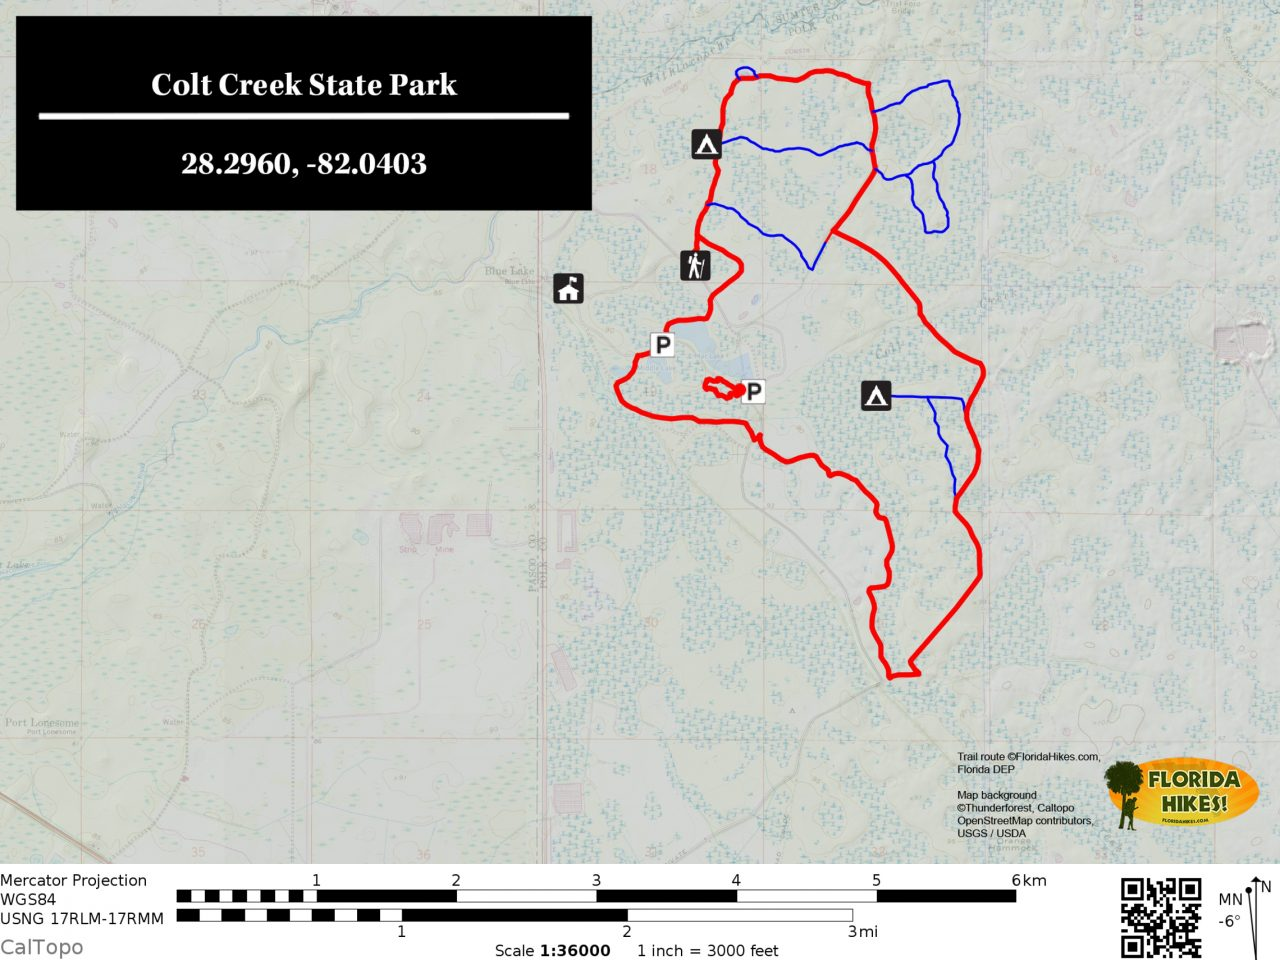 Colt Creek State Park trail map